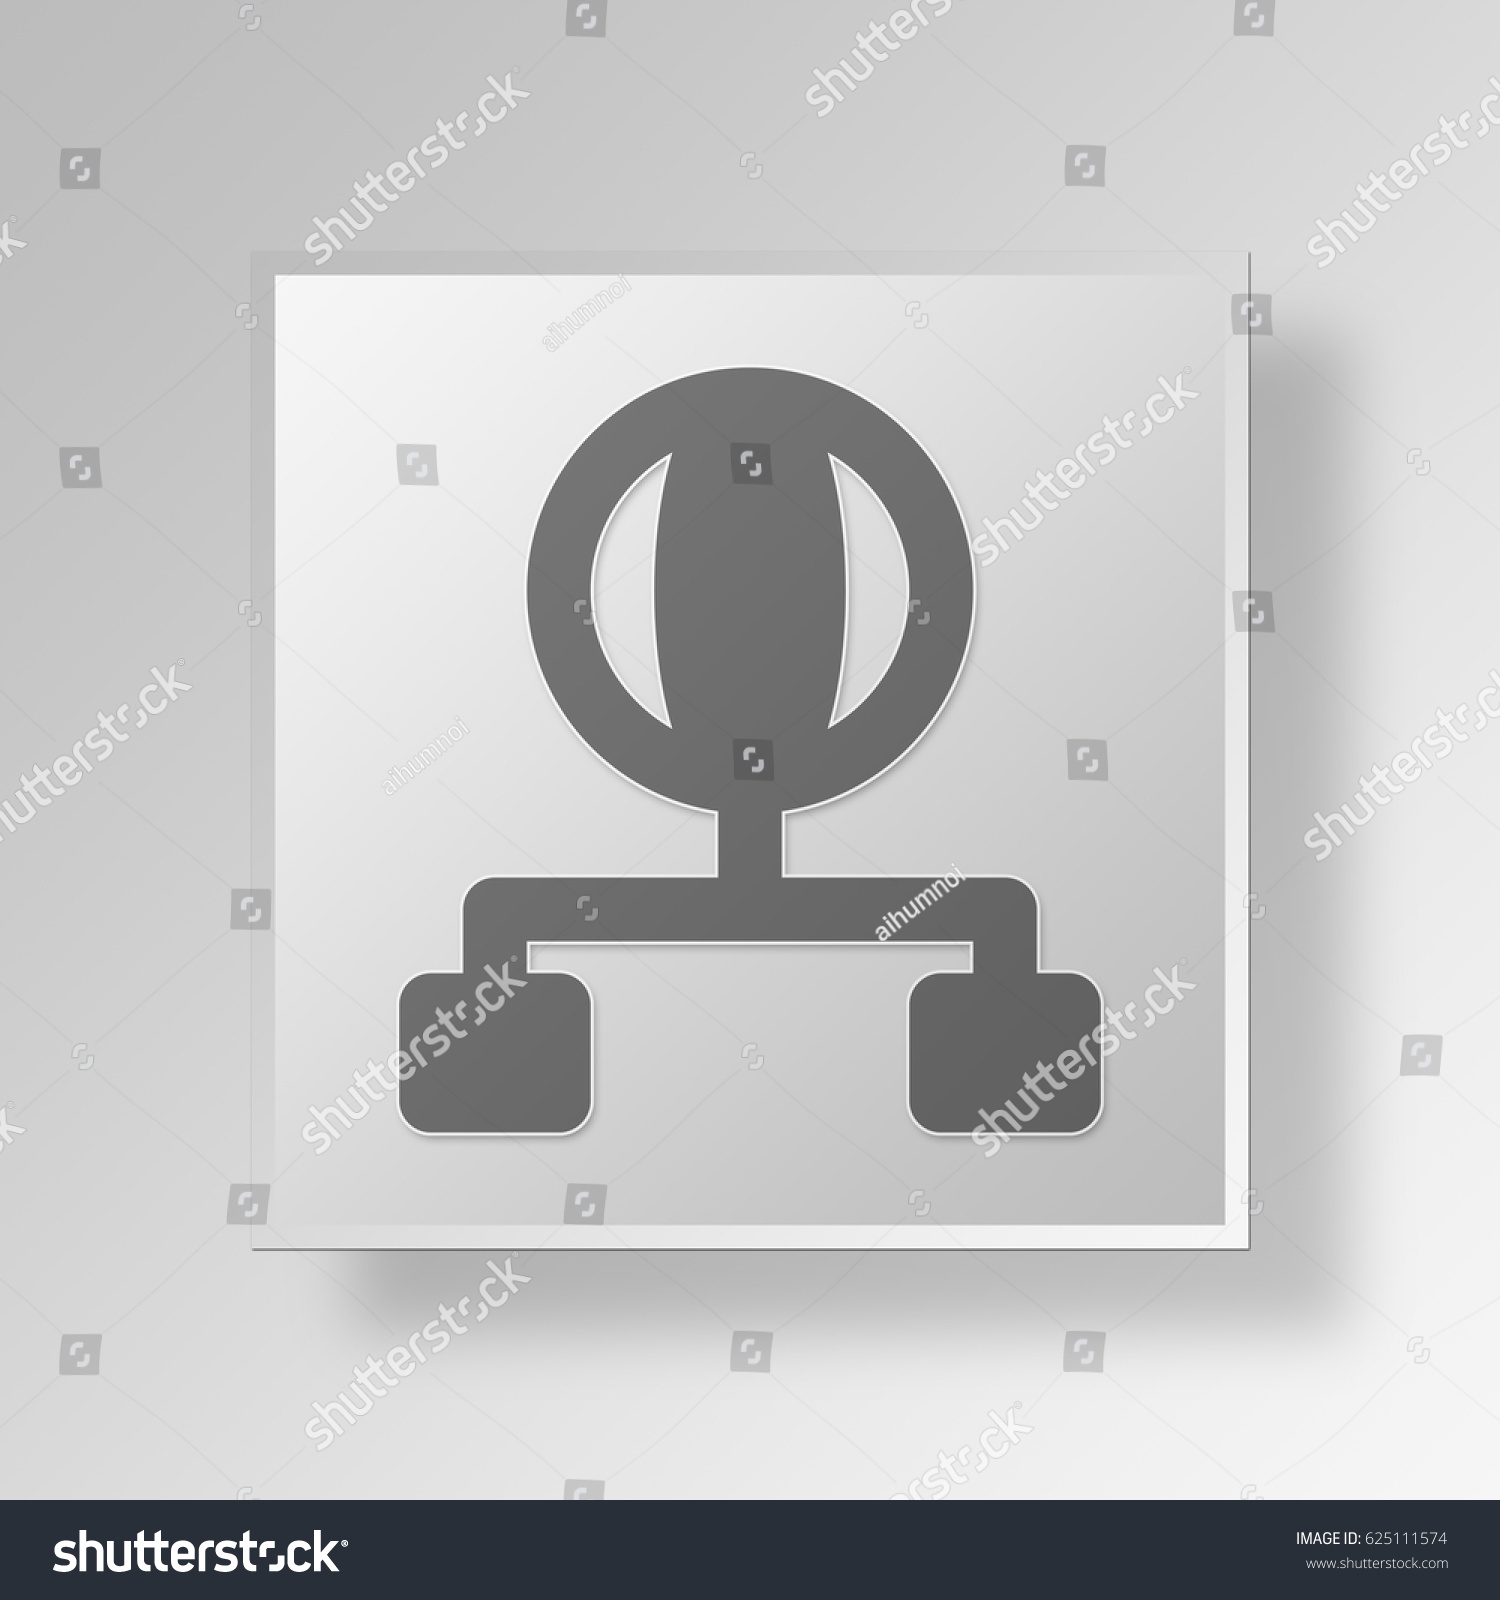 Attractive Dpst Symbol Photo - Electrical System Block Diagram ...